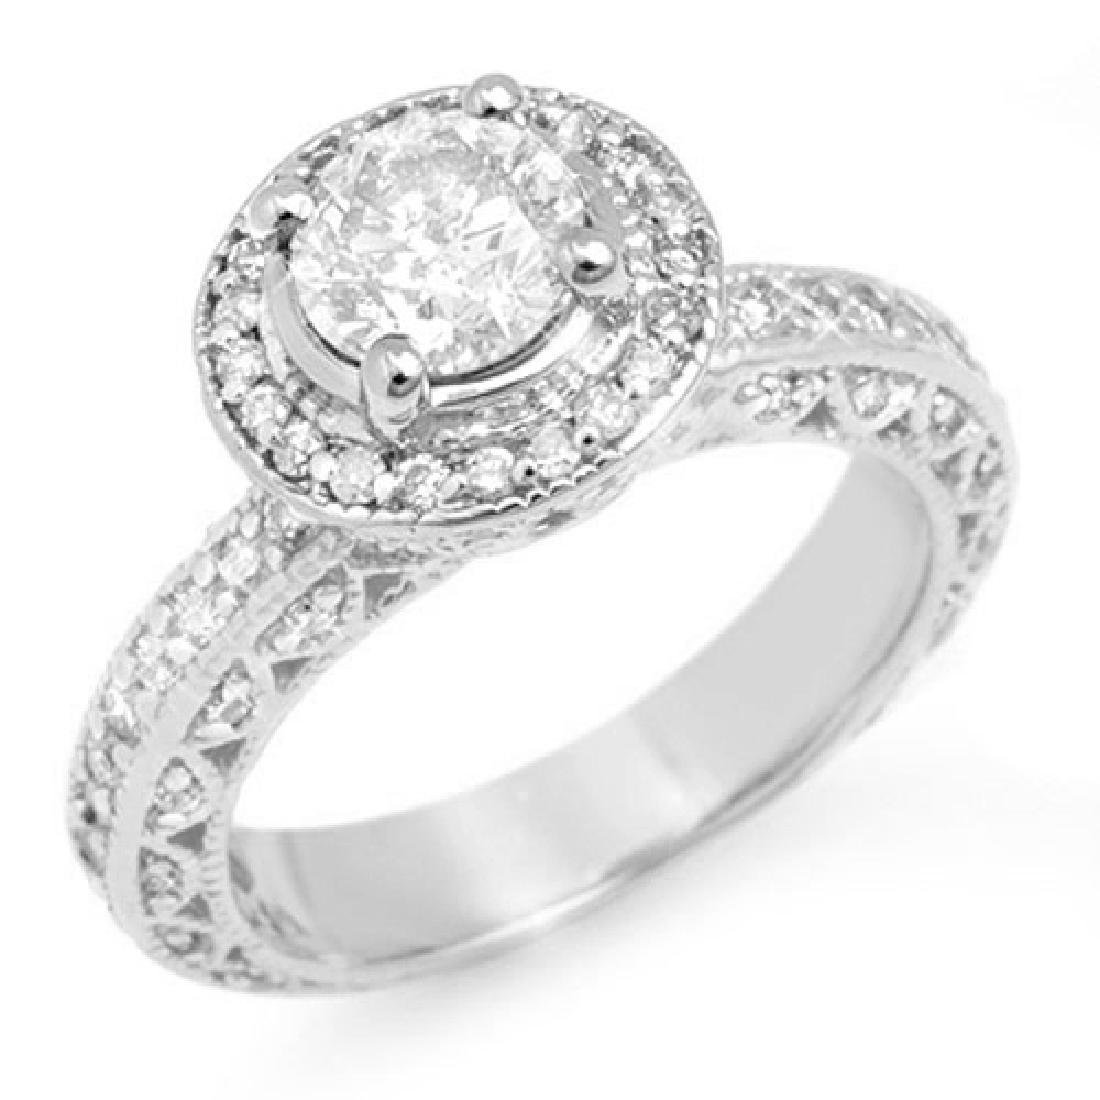 2.0 CTW Certified VS/SI Diamond Ring 18K White Gold